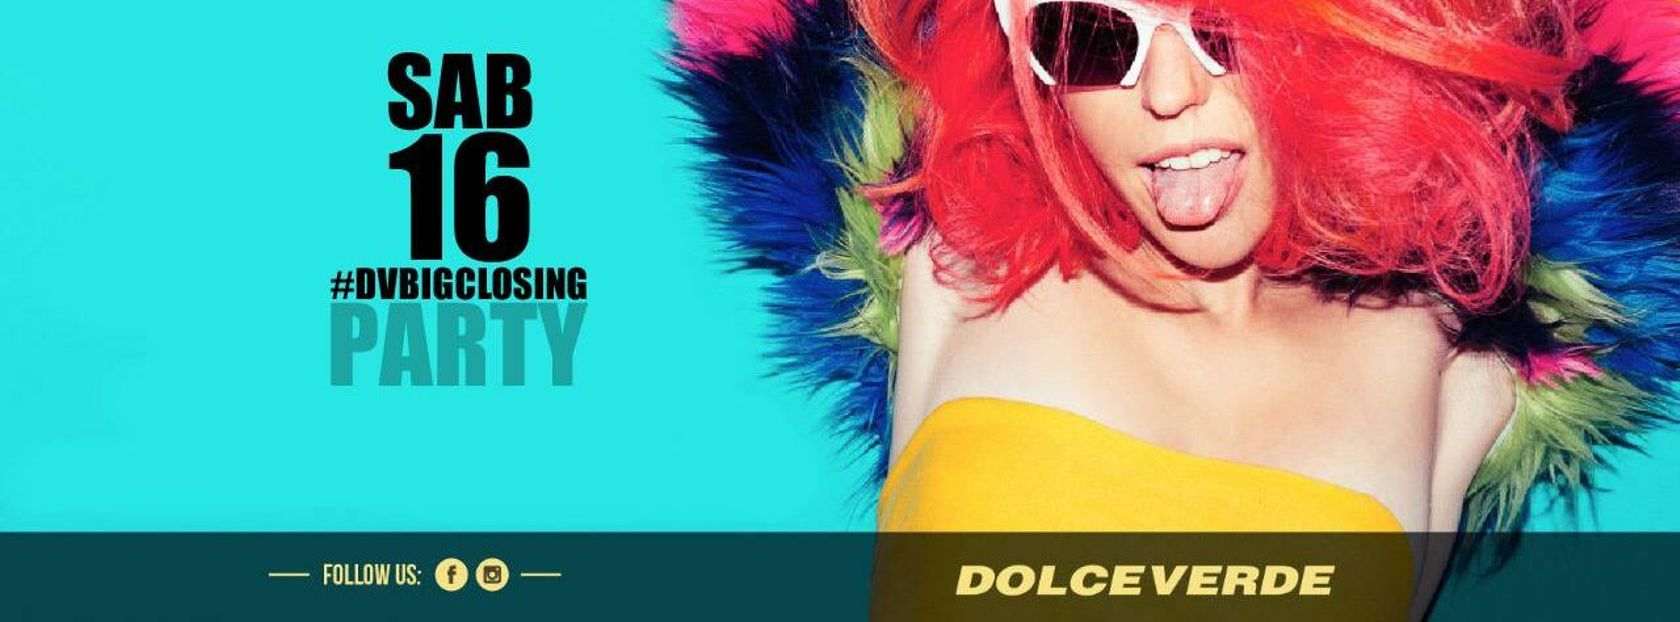 DOLCEVERDE - Big Closing Party